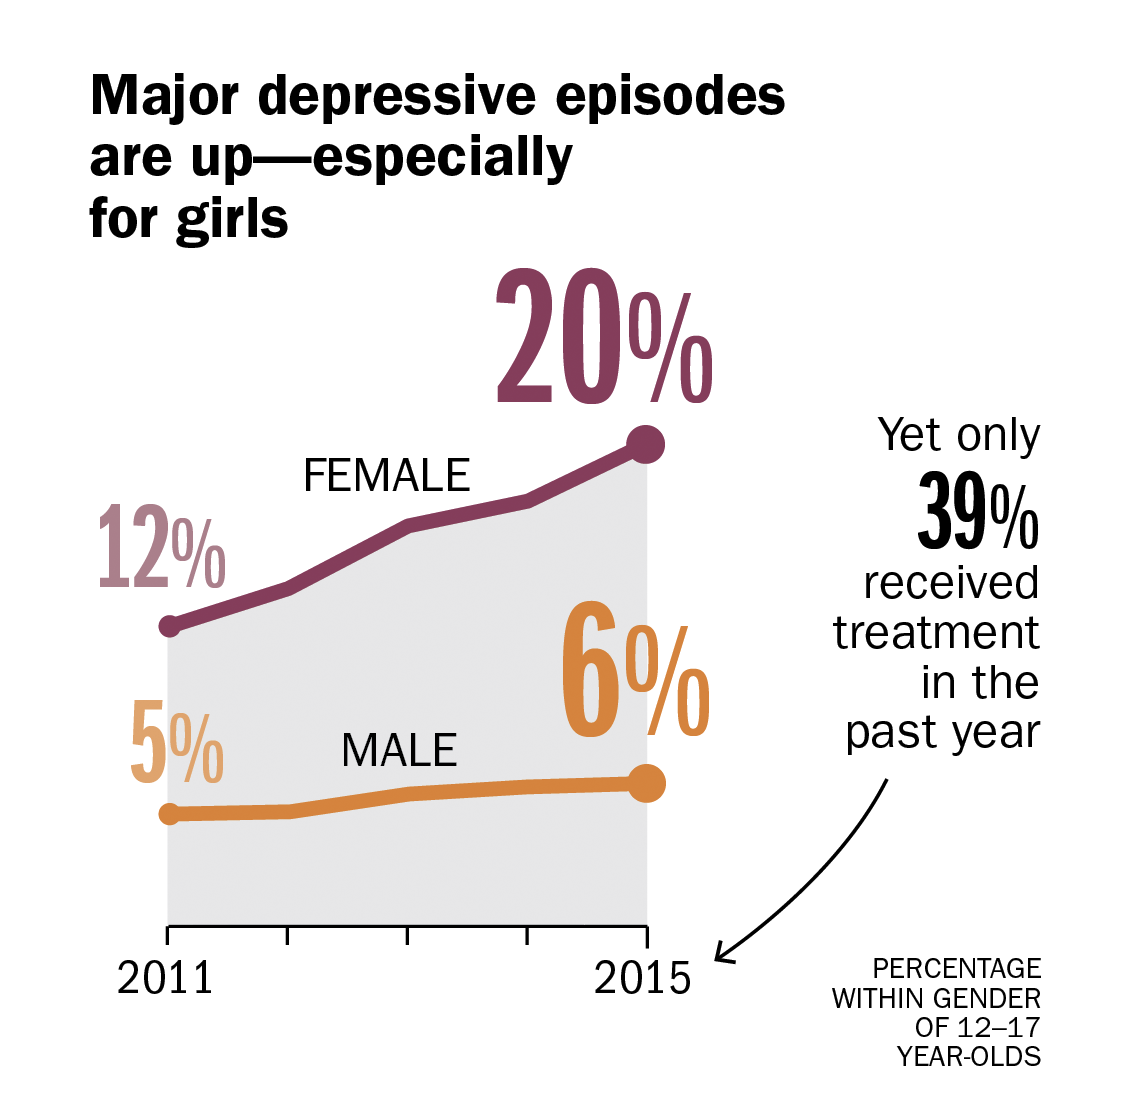 teens are getting more depressed but using fewer drugs Teens Are Getting More Depressed But Using Fewer Drugs 3 depression rates